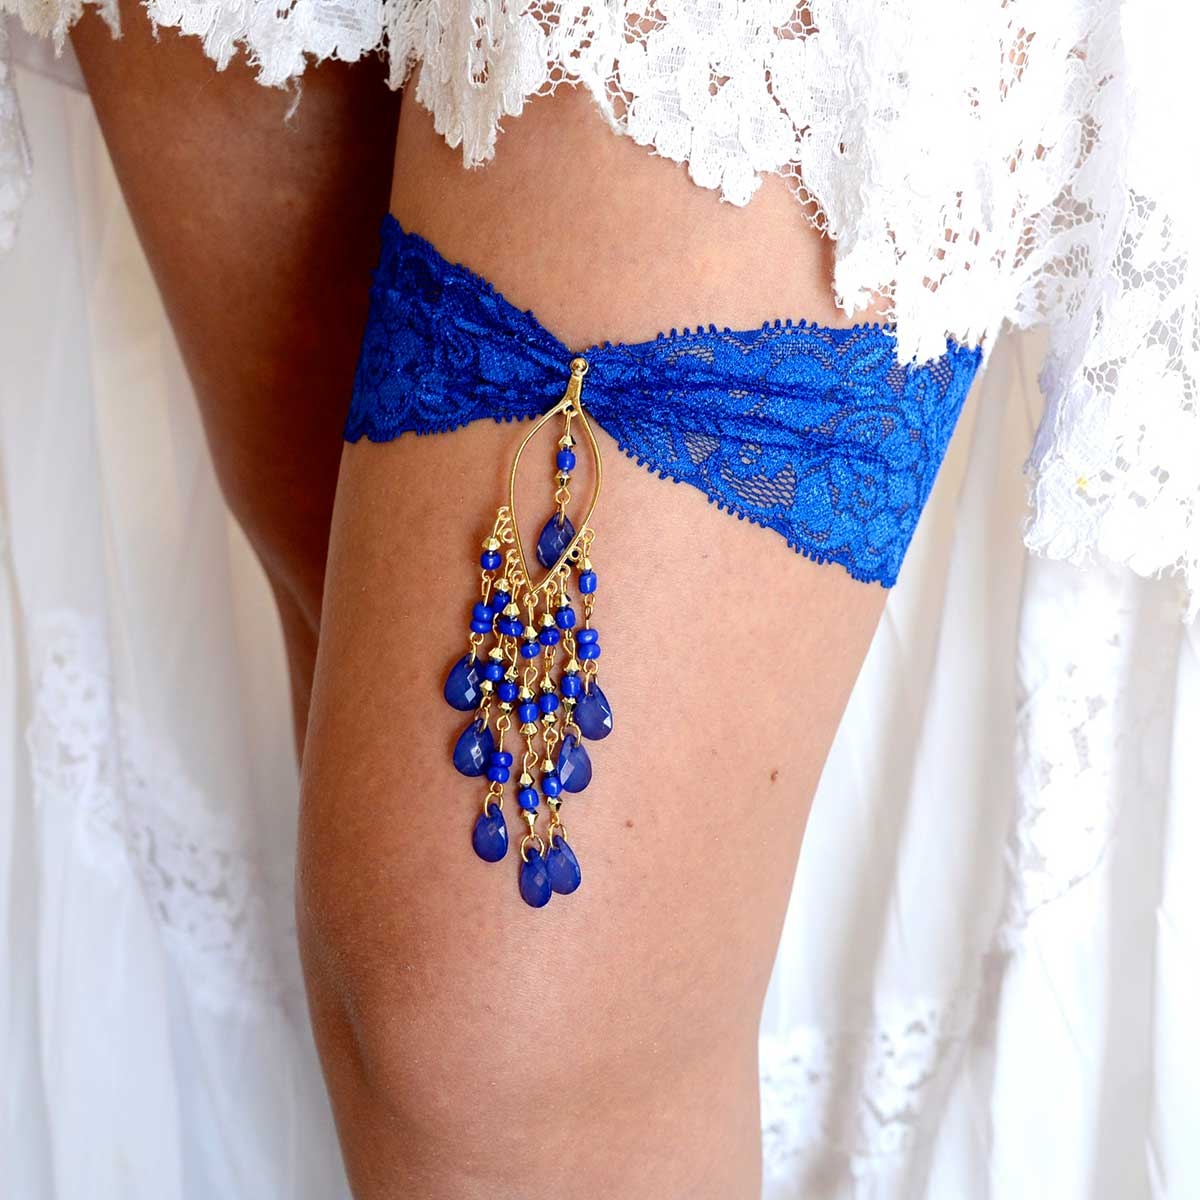 Royal Blue Bridal Garter Set With Gold & Blue Rhinestone - Wedding Garter - SuzannaM Designs